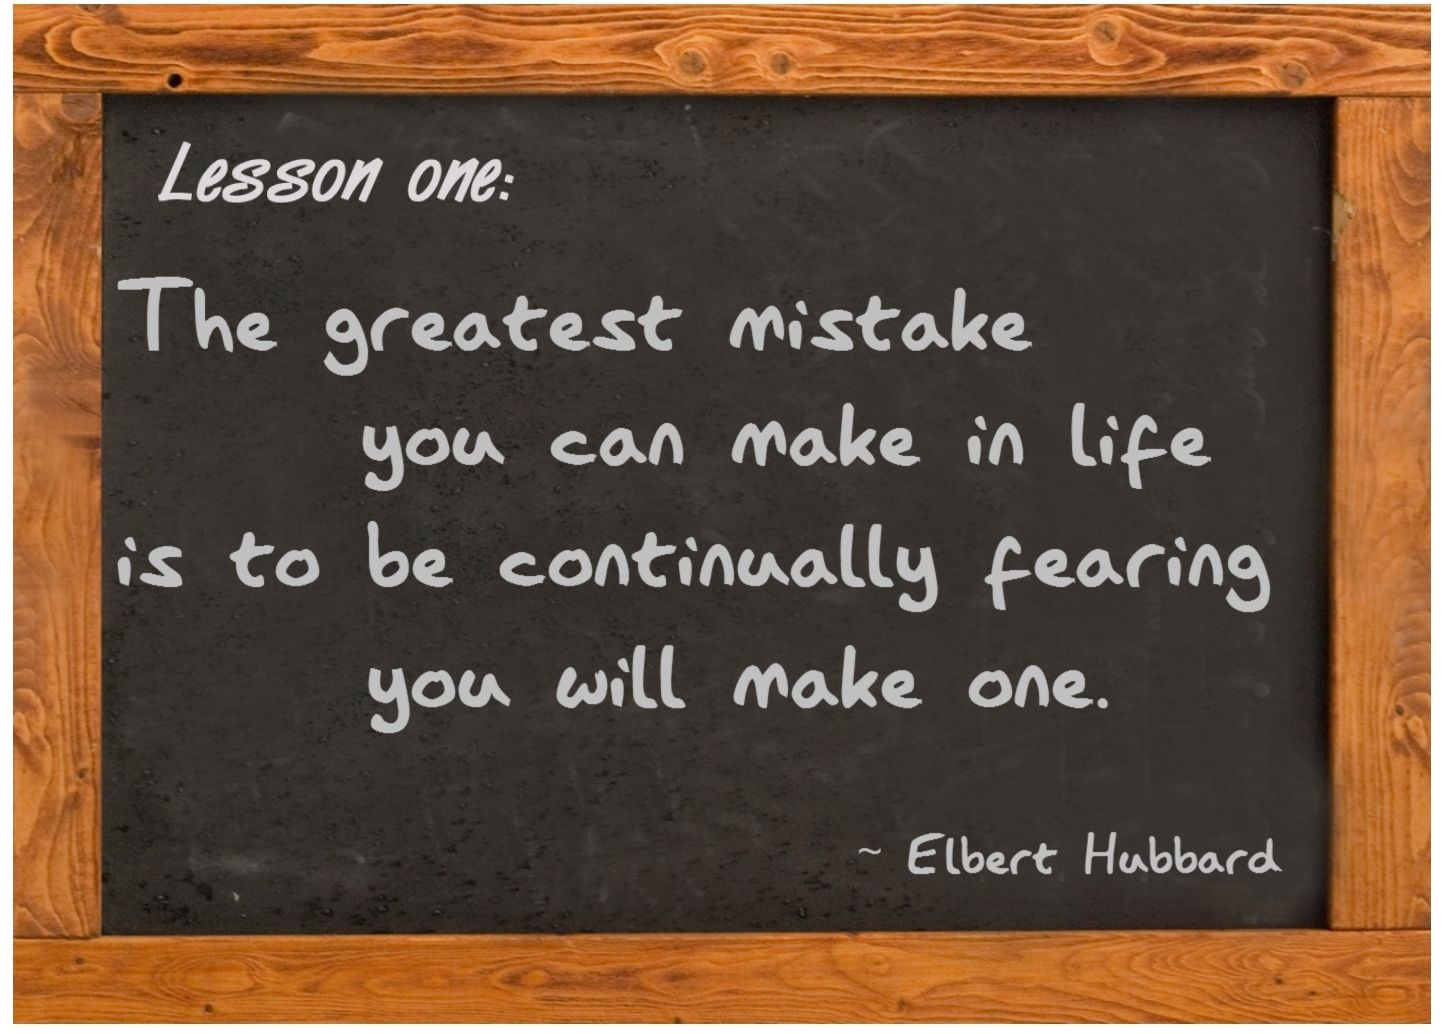 The greatest mistake | Life lesson quotes, Fear quotes ...